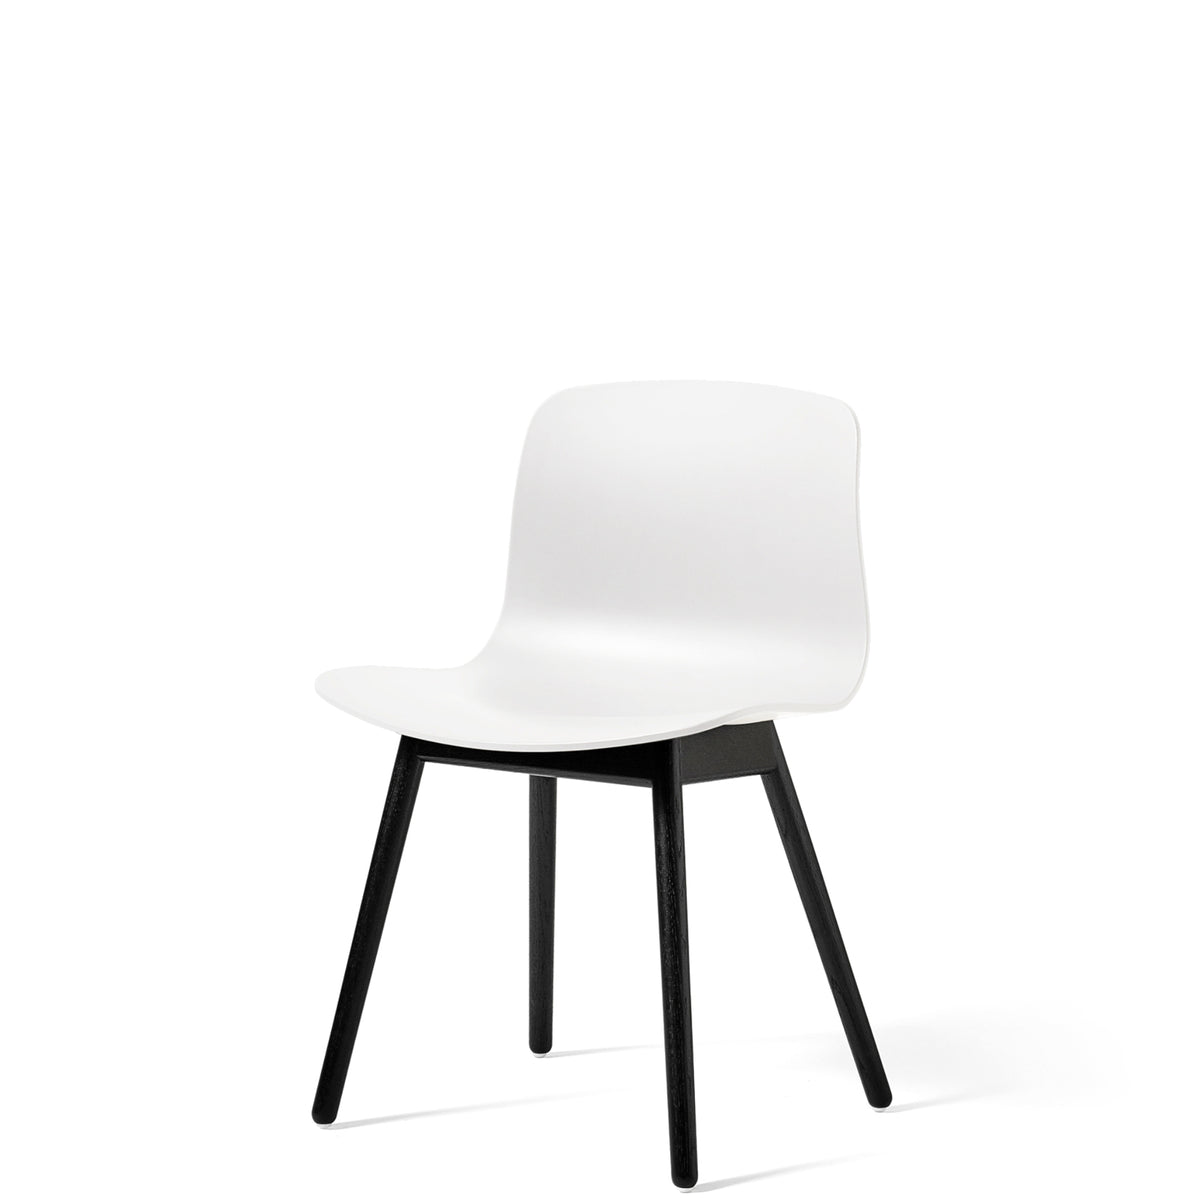 HAY About A Chair AAC12 White Chair with Black Stained Solid Oak Frame